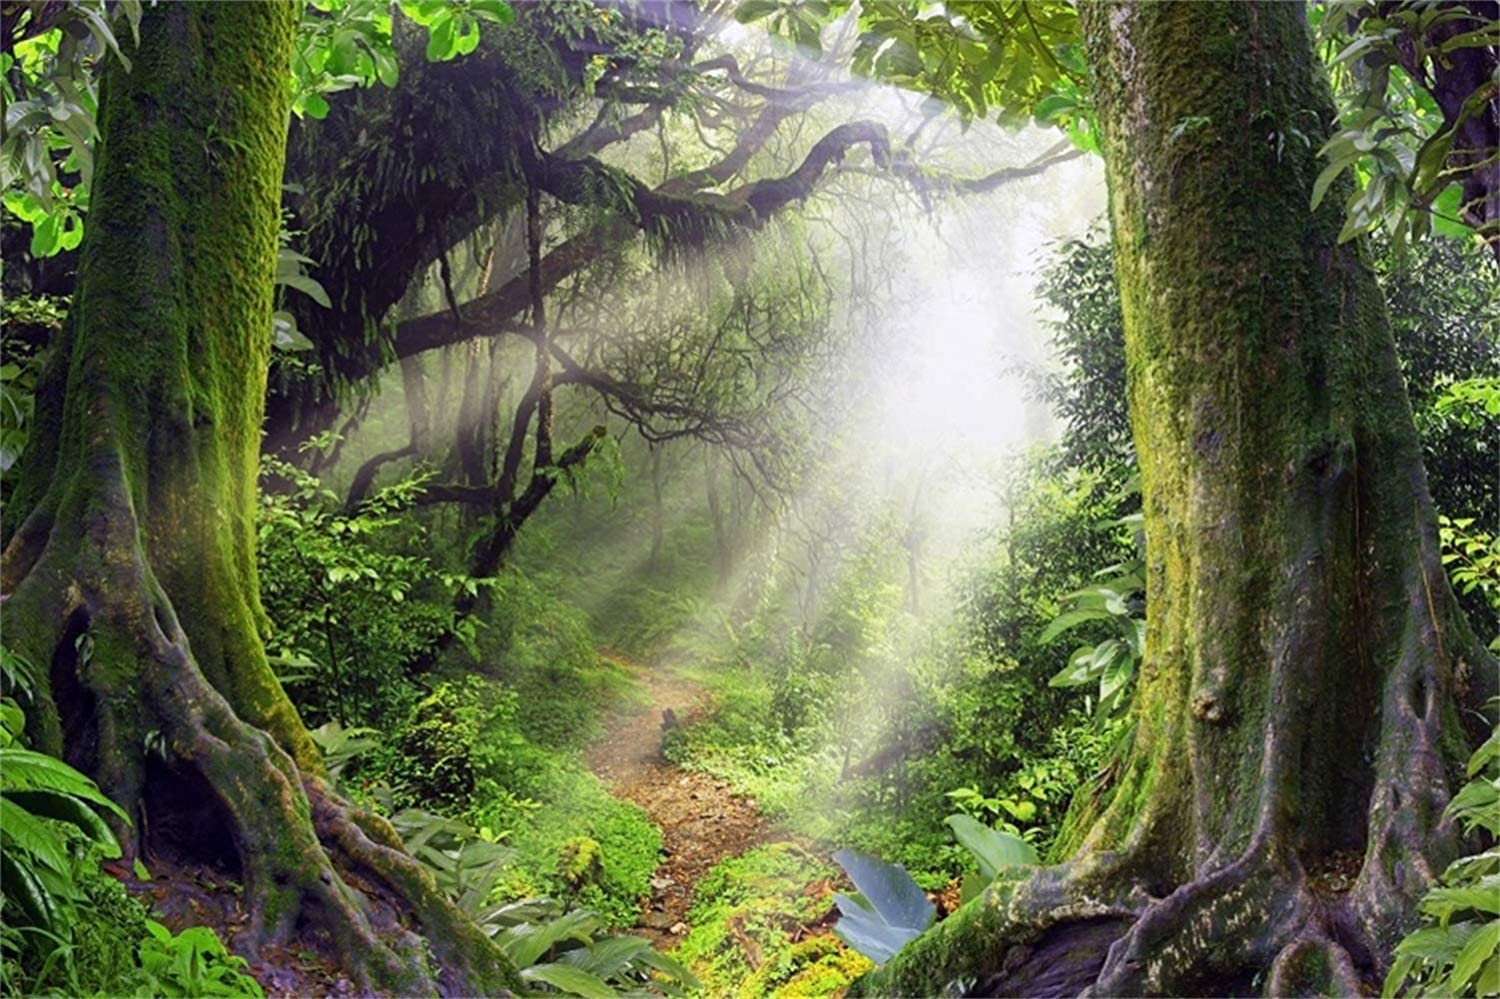 10x6.5ft Fairytale Dreamy Jungle Forest Backdrop Polyester Lush Forest Mossy Trees Sunshine Light Beam Photography Background Baby 1st Birthday Party Banner Child Baby Portrait Shoot Summer Camp